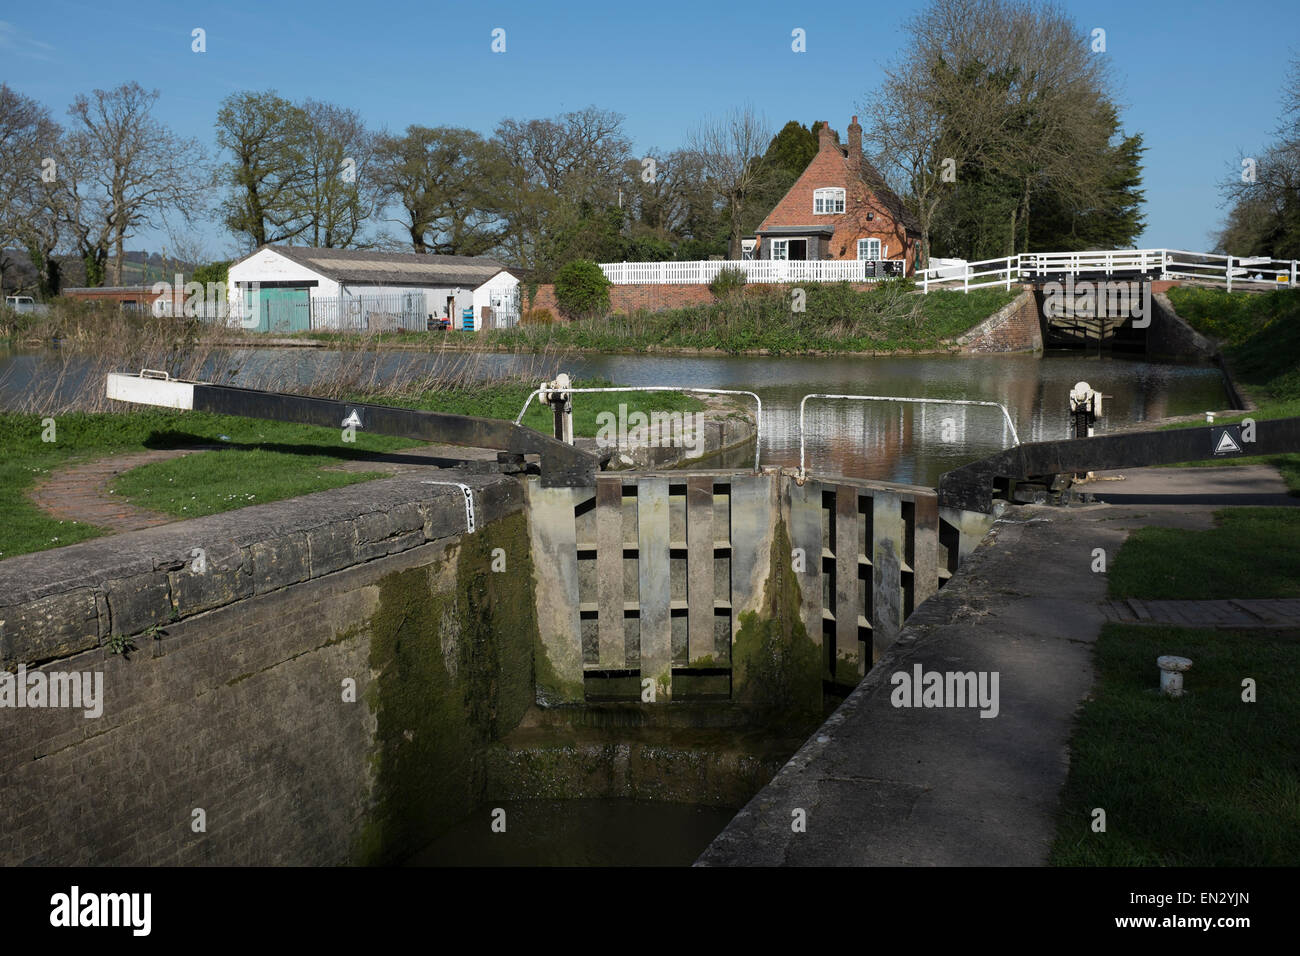 View to the lock gates and the Tea House Cafe at the top of Caen Hill in Devizes - Stock Image